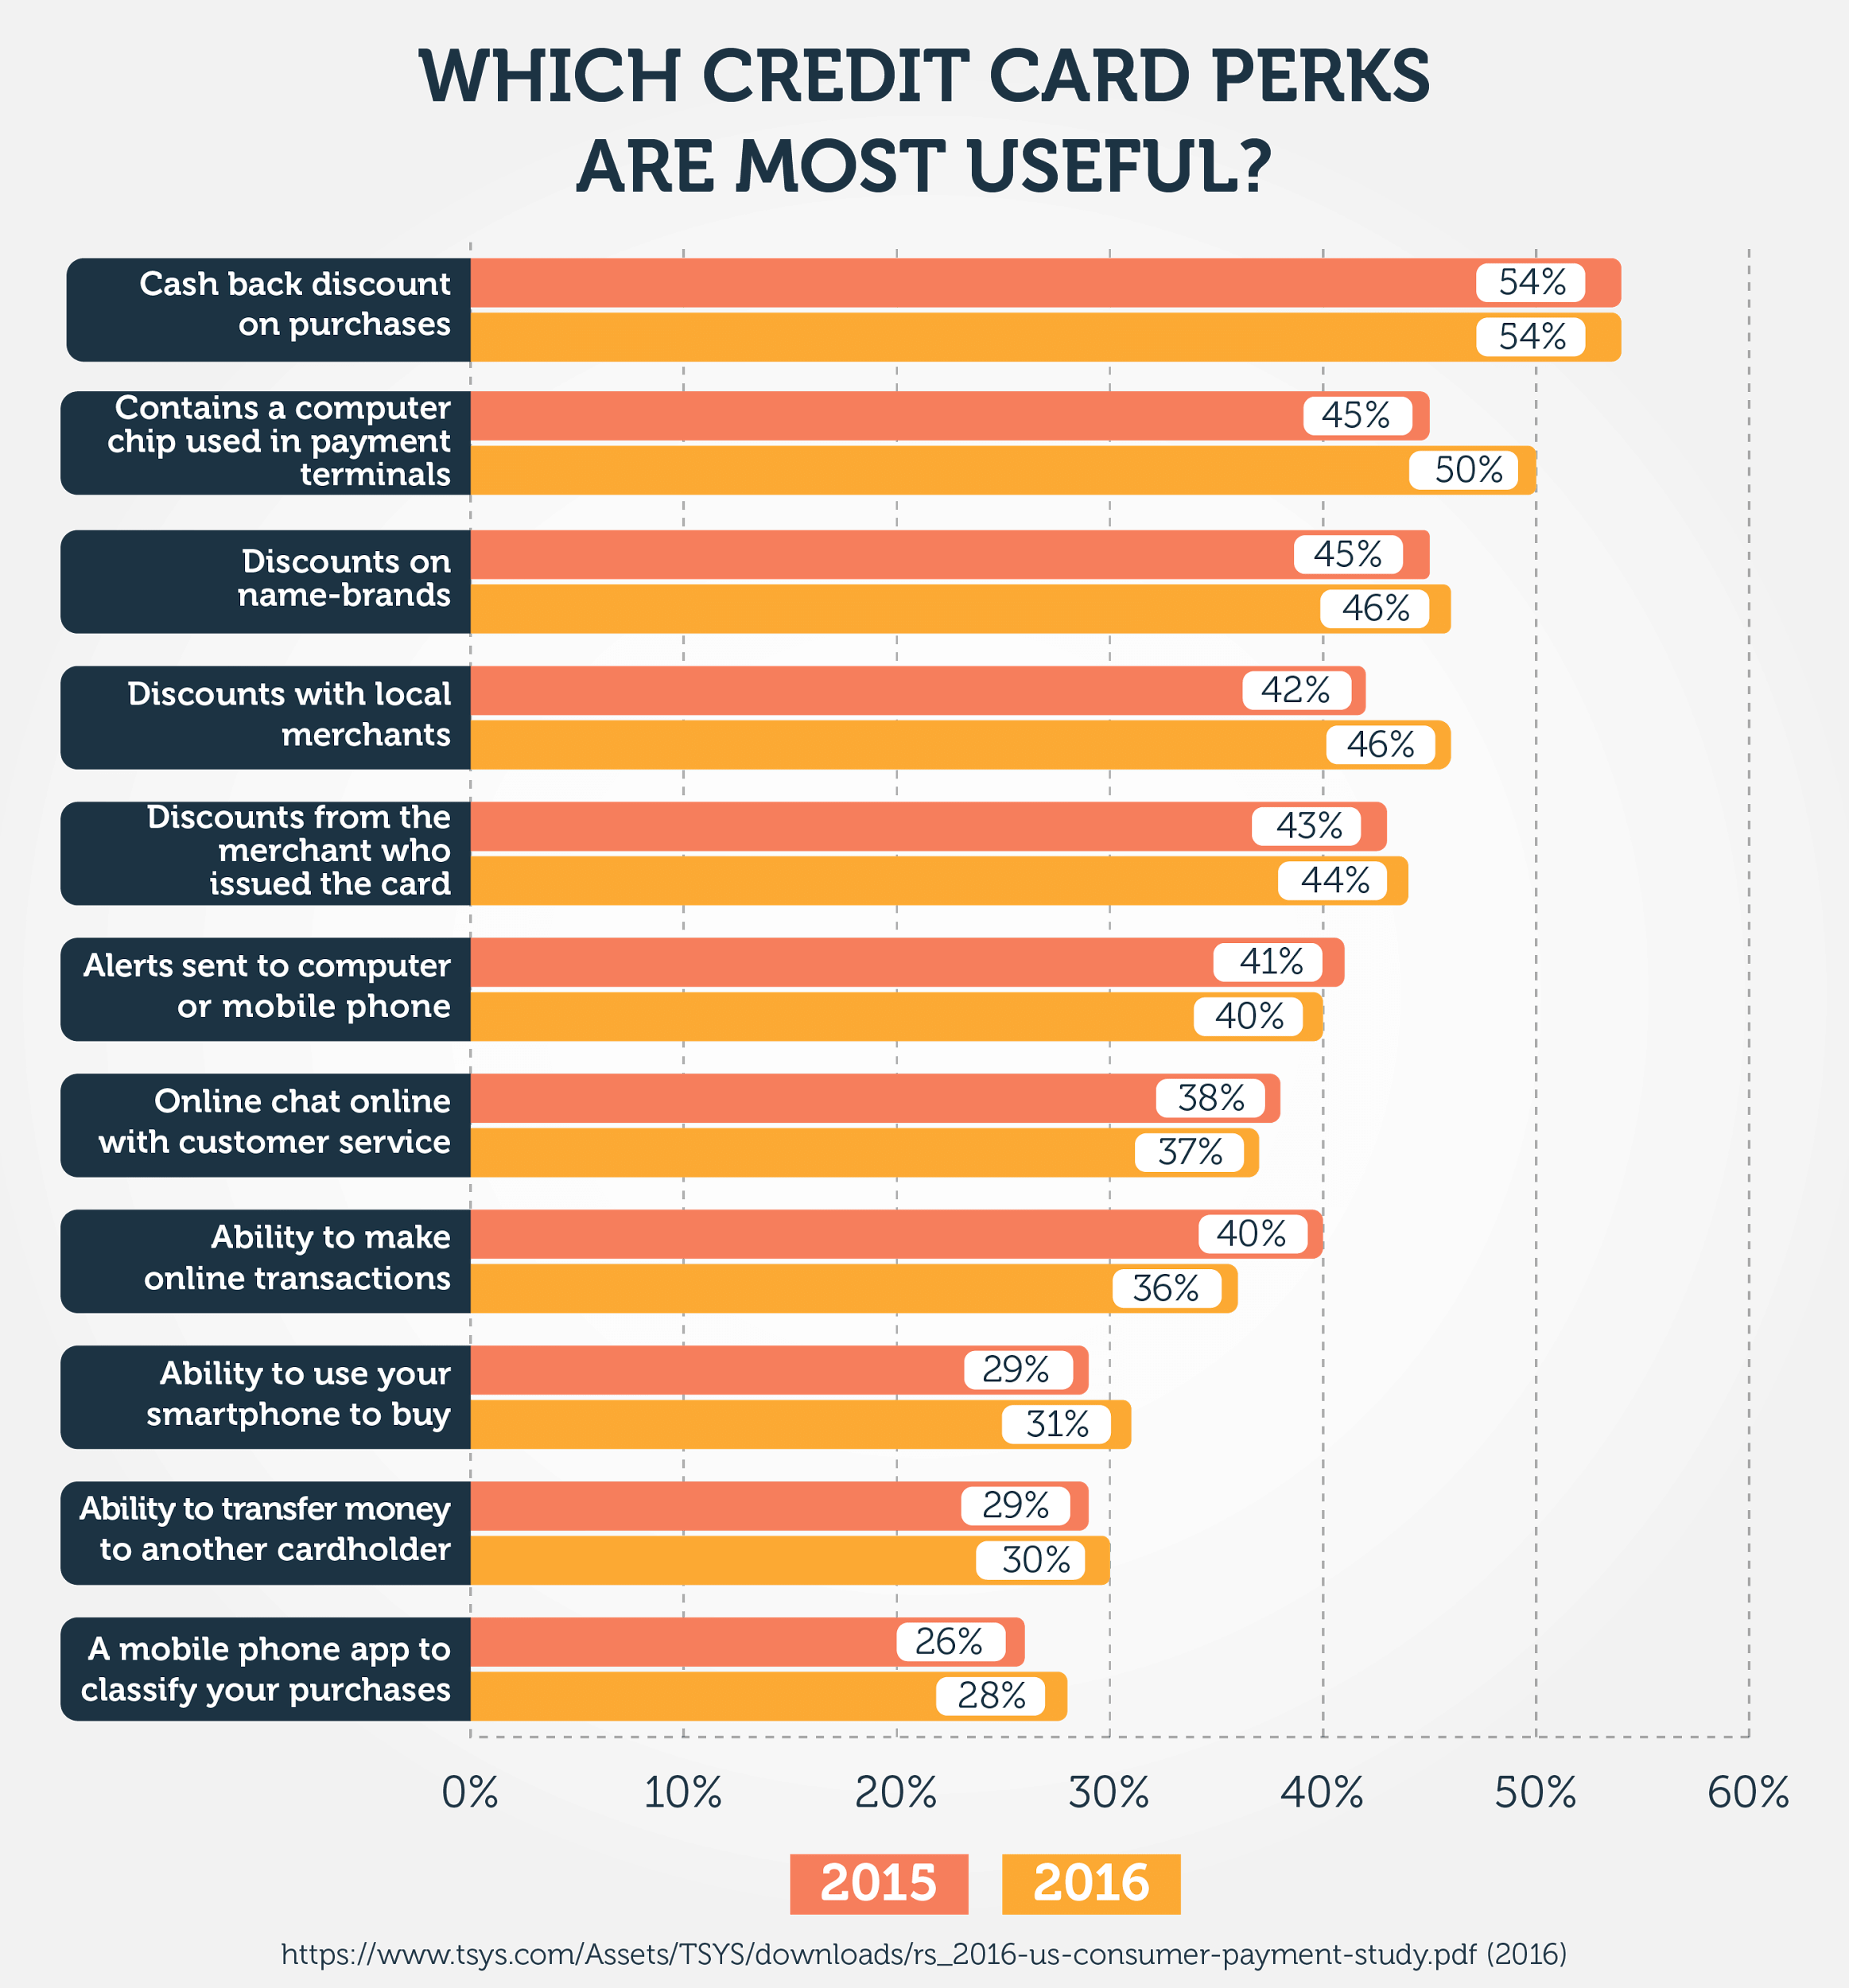 Which credit card perks are most useful?